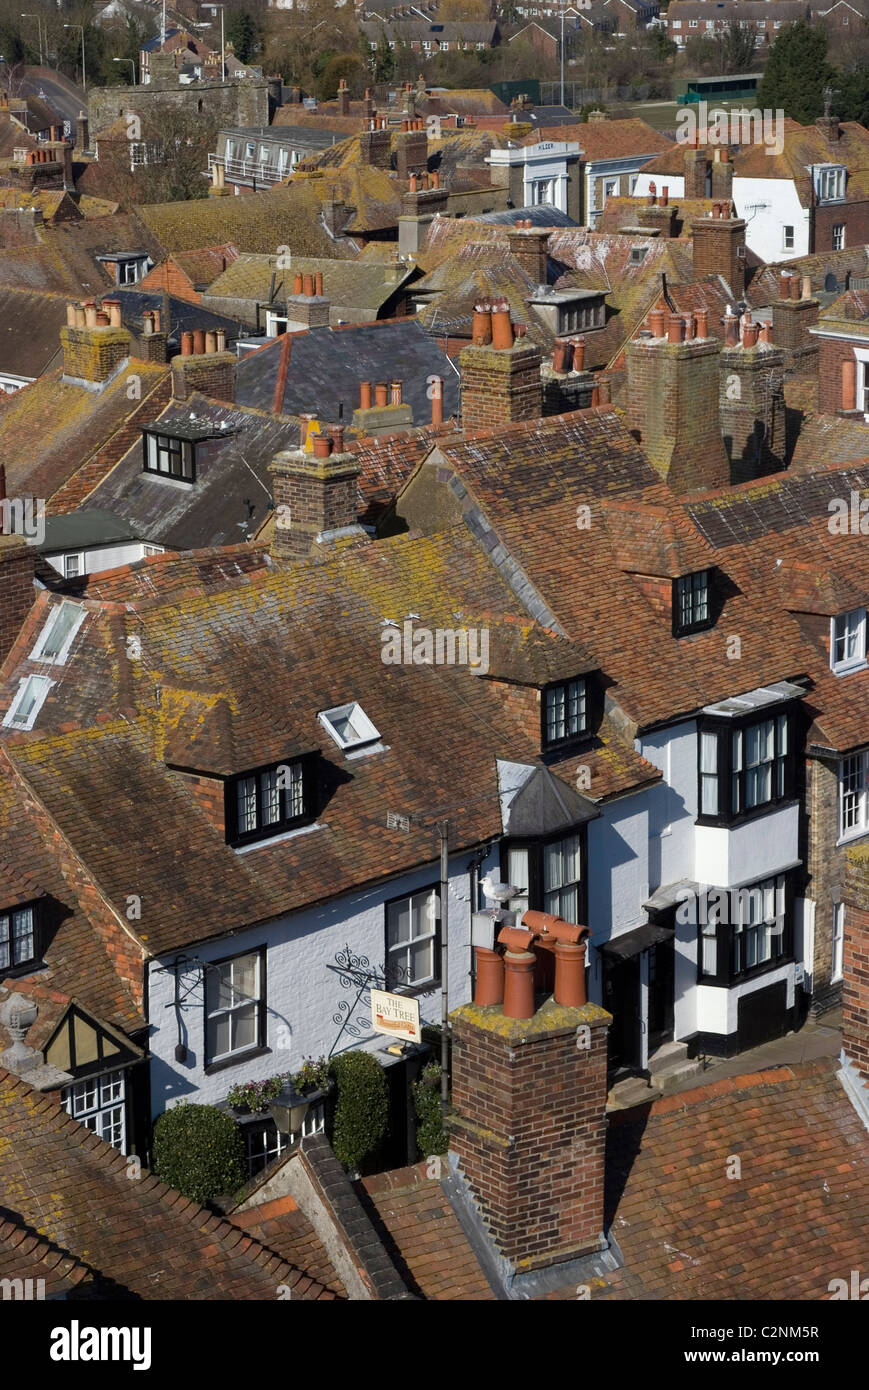 Looking over the roofs of Rye from St Mary Church clock tower, Sussex, England - Stock Image